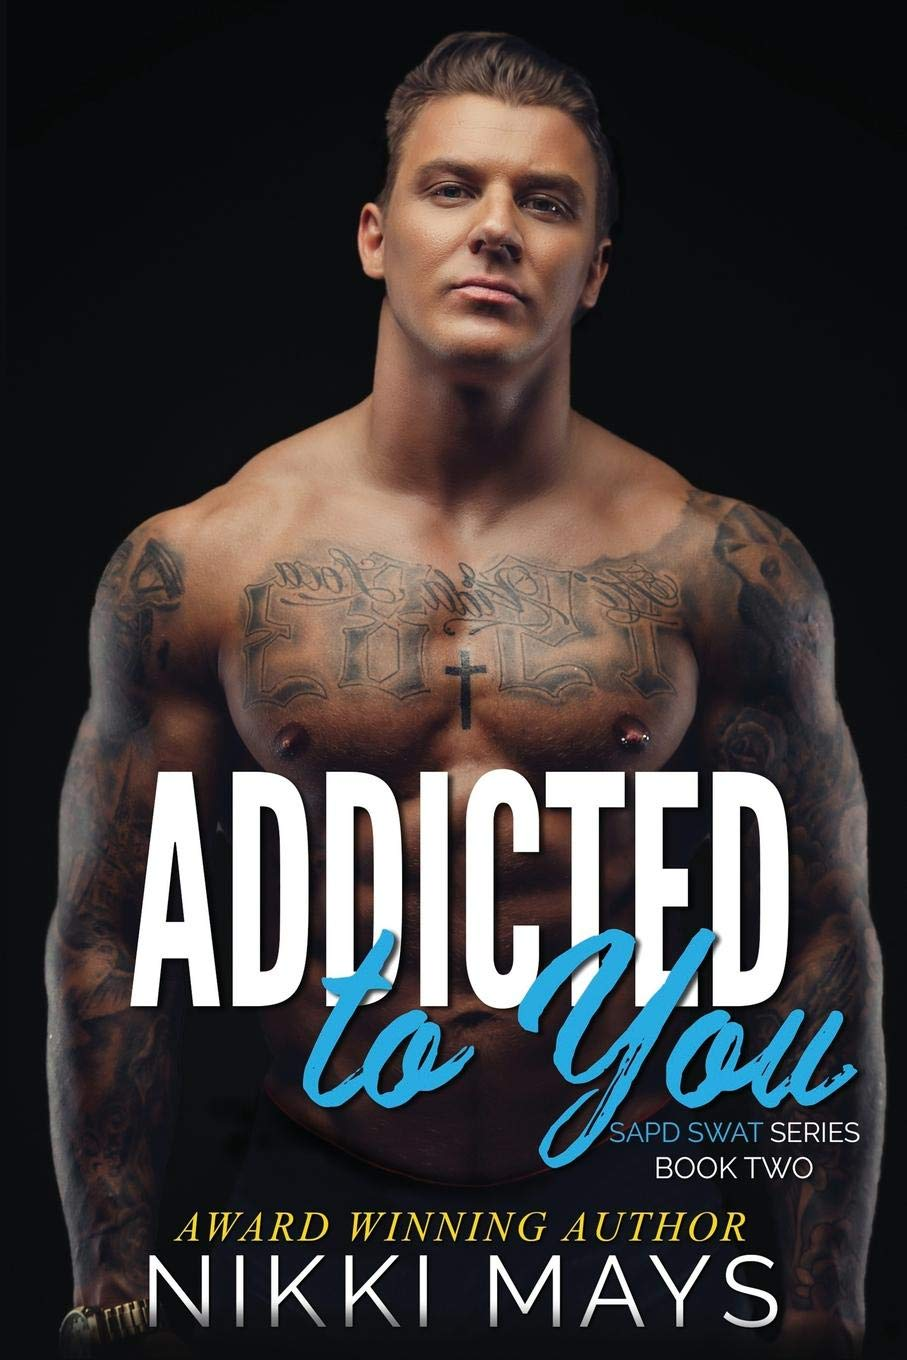 Addicted to You: Book 2 (SAPD SWAT Series)